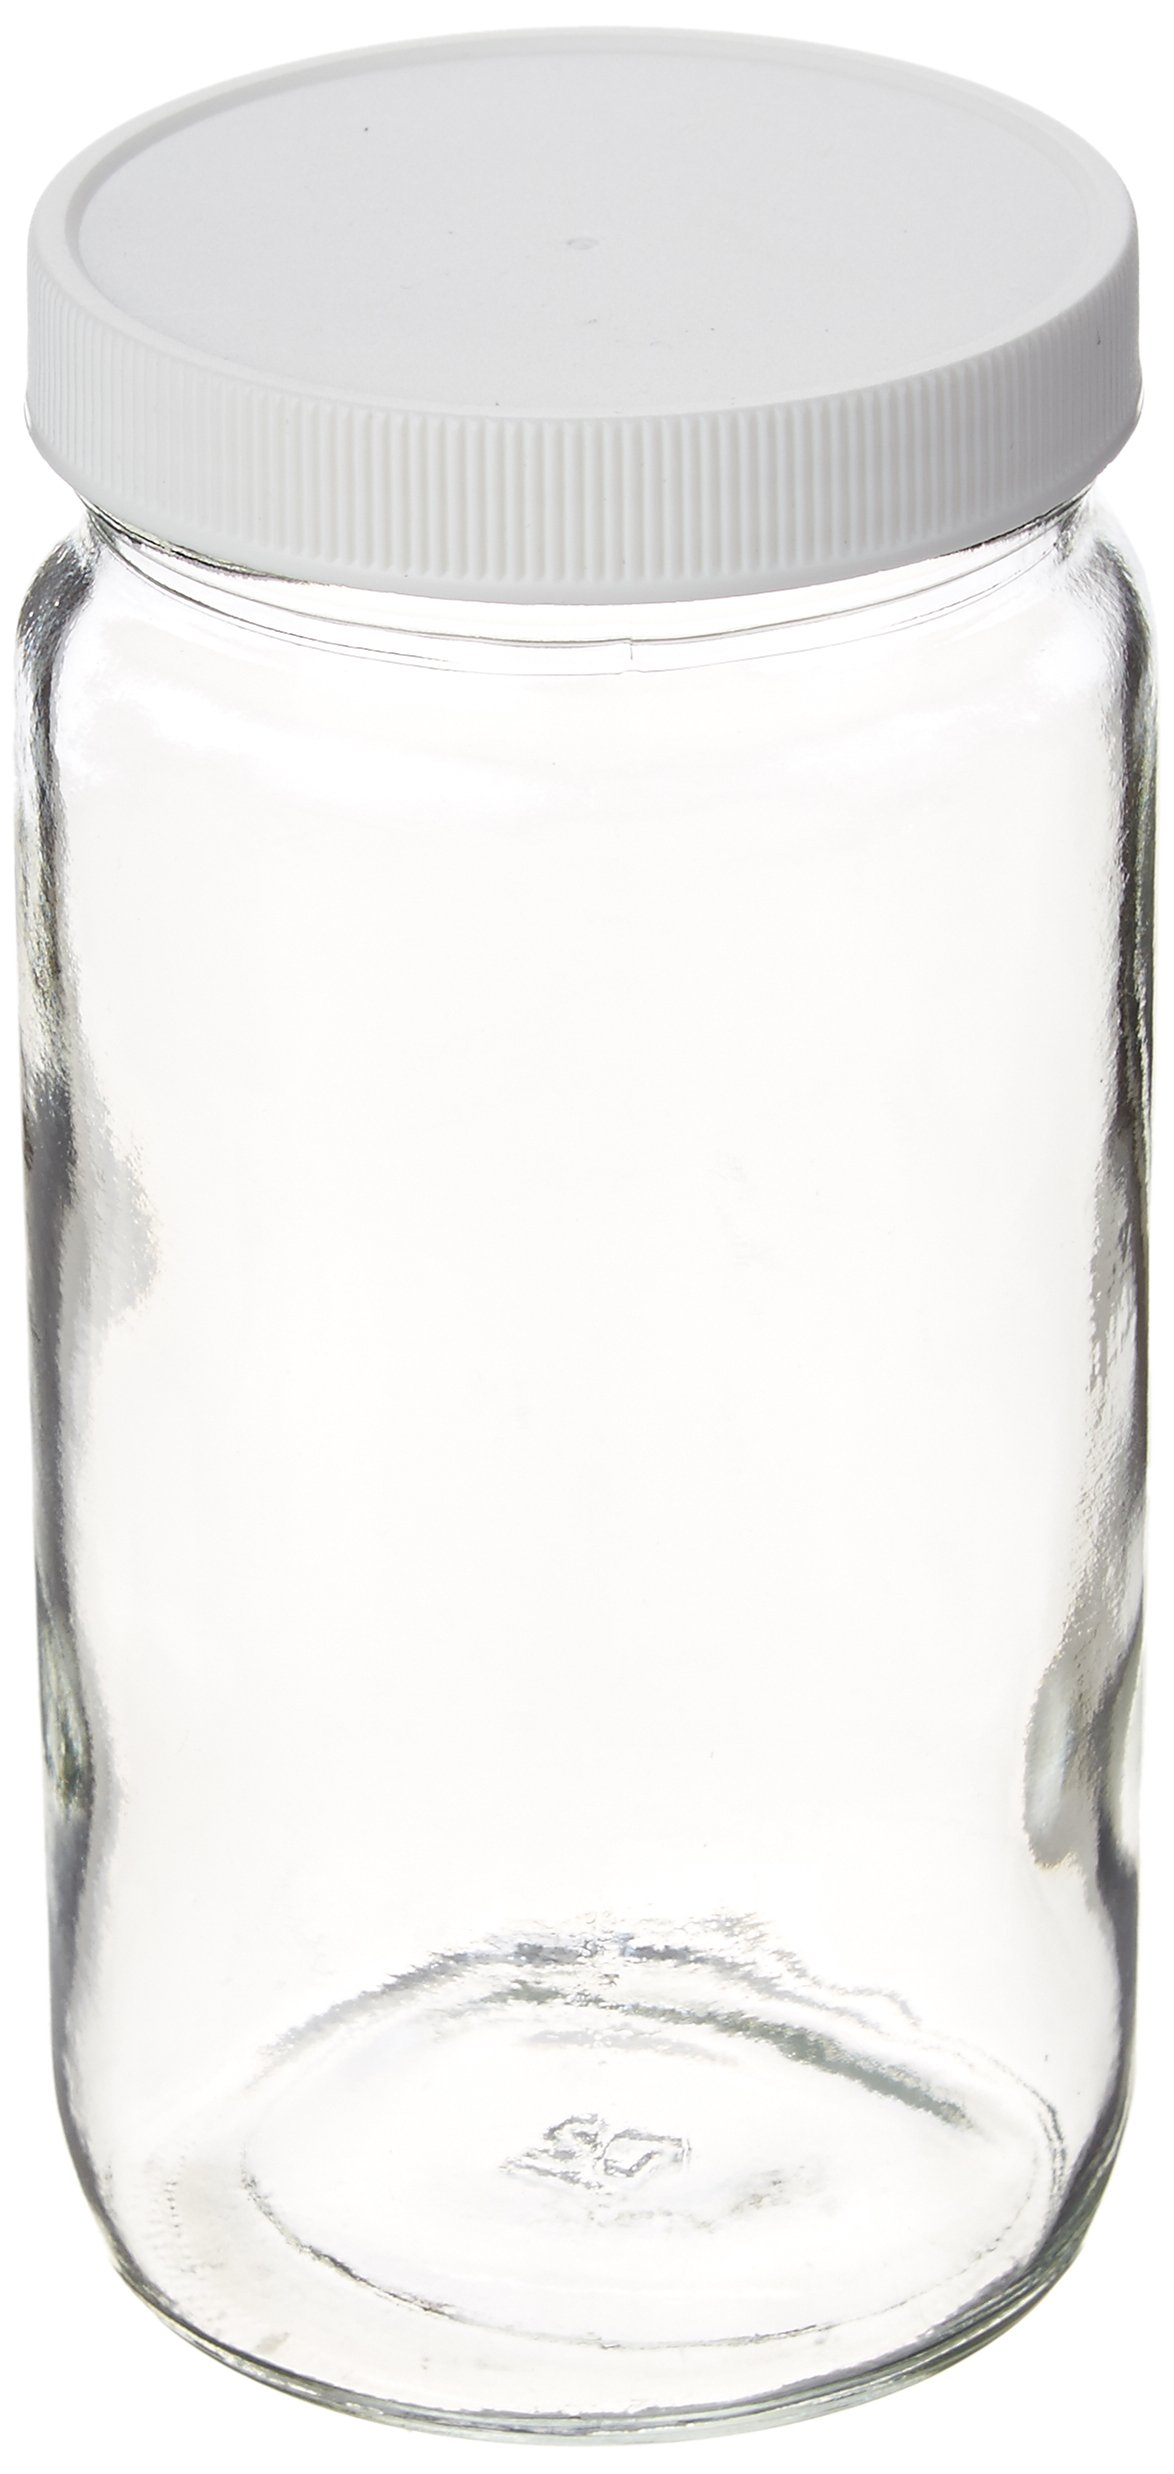 JG Finneran 9-192-2 Clear Borosilicate Glass Precleaned Tall Straight Sided Wide Mouth Jar with White Polypropylene Closure and 0.015'' PTFE Lined, 70-400mm Cap Size, 500mL Capacity (Pack of 12)